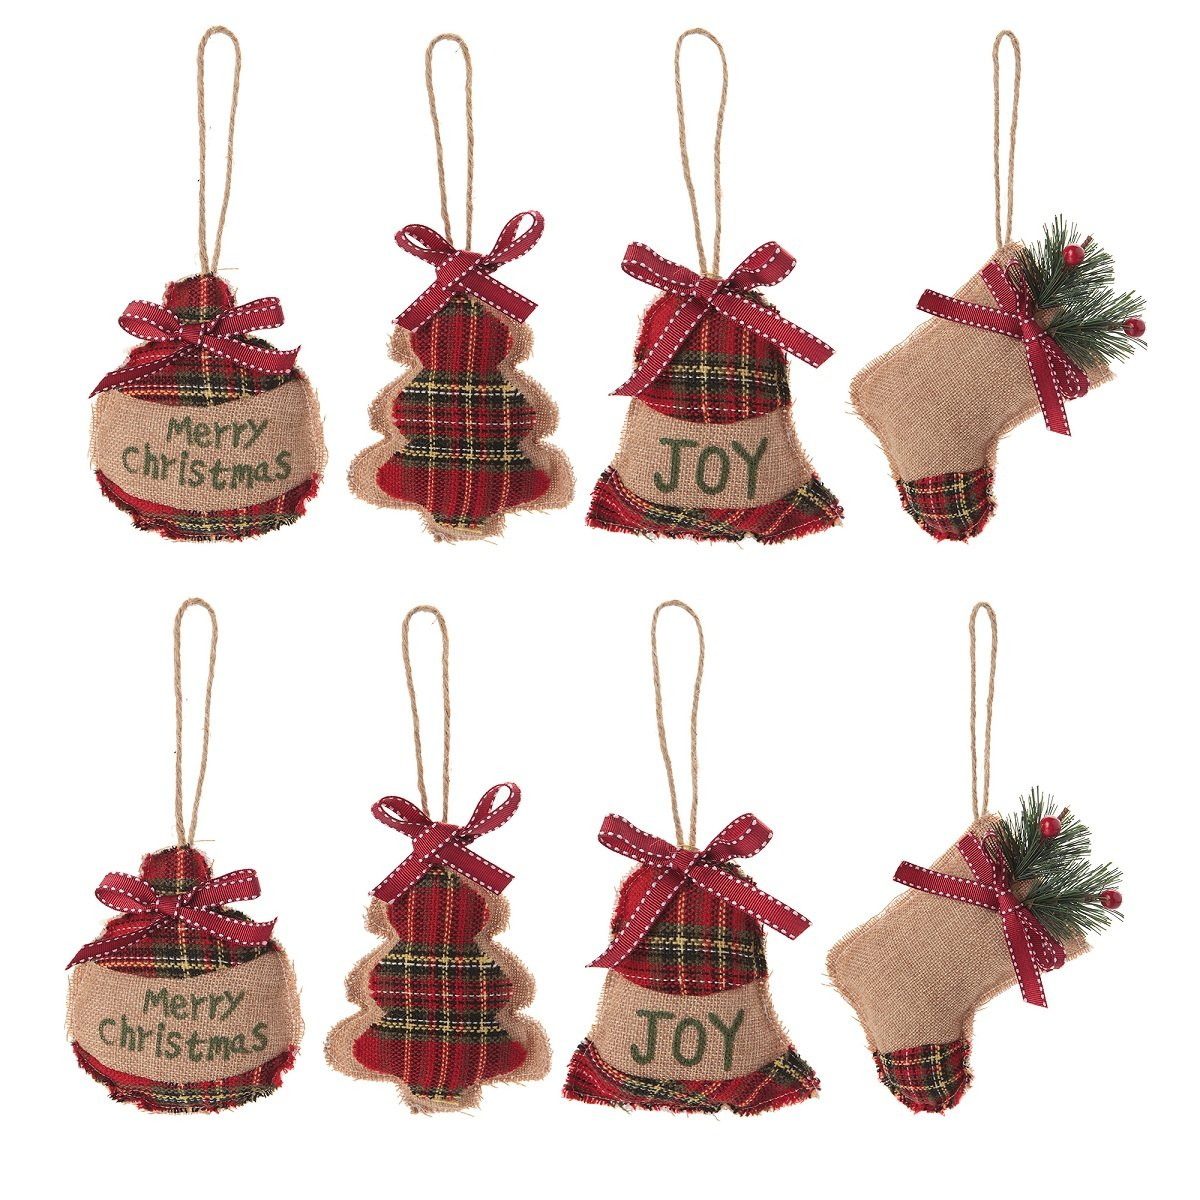 Christmas Tree Ornaments Stocking Decorations